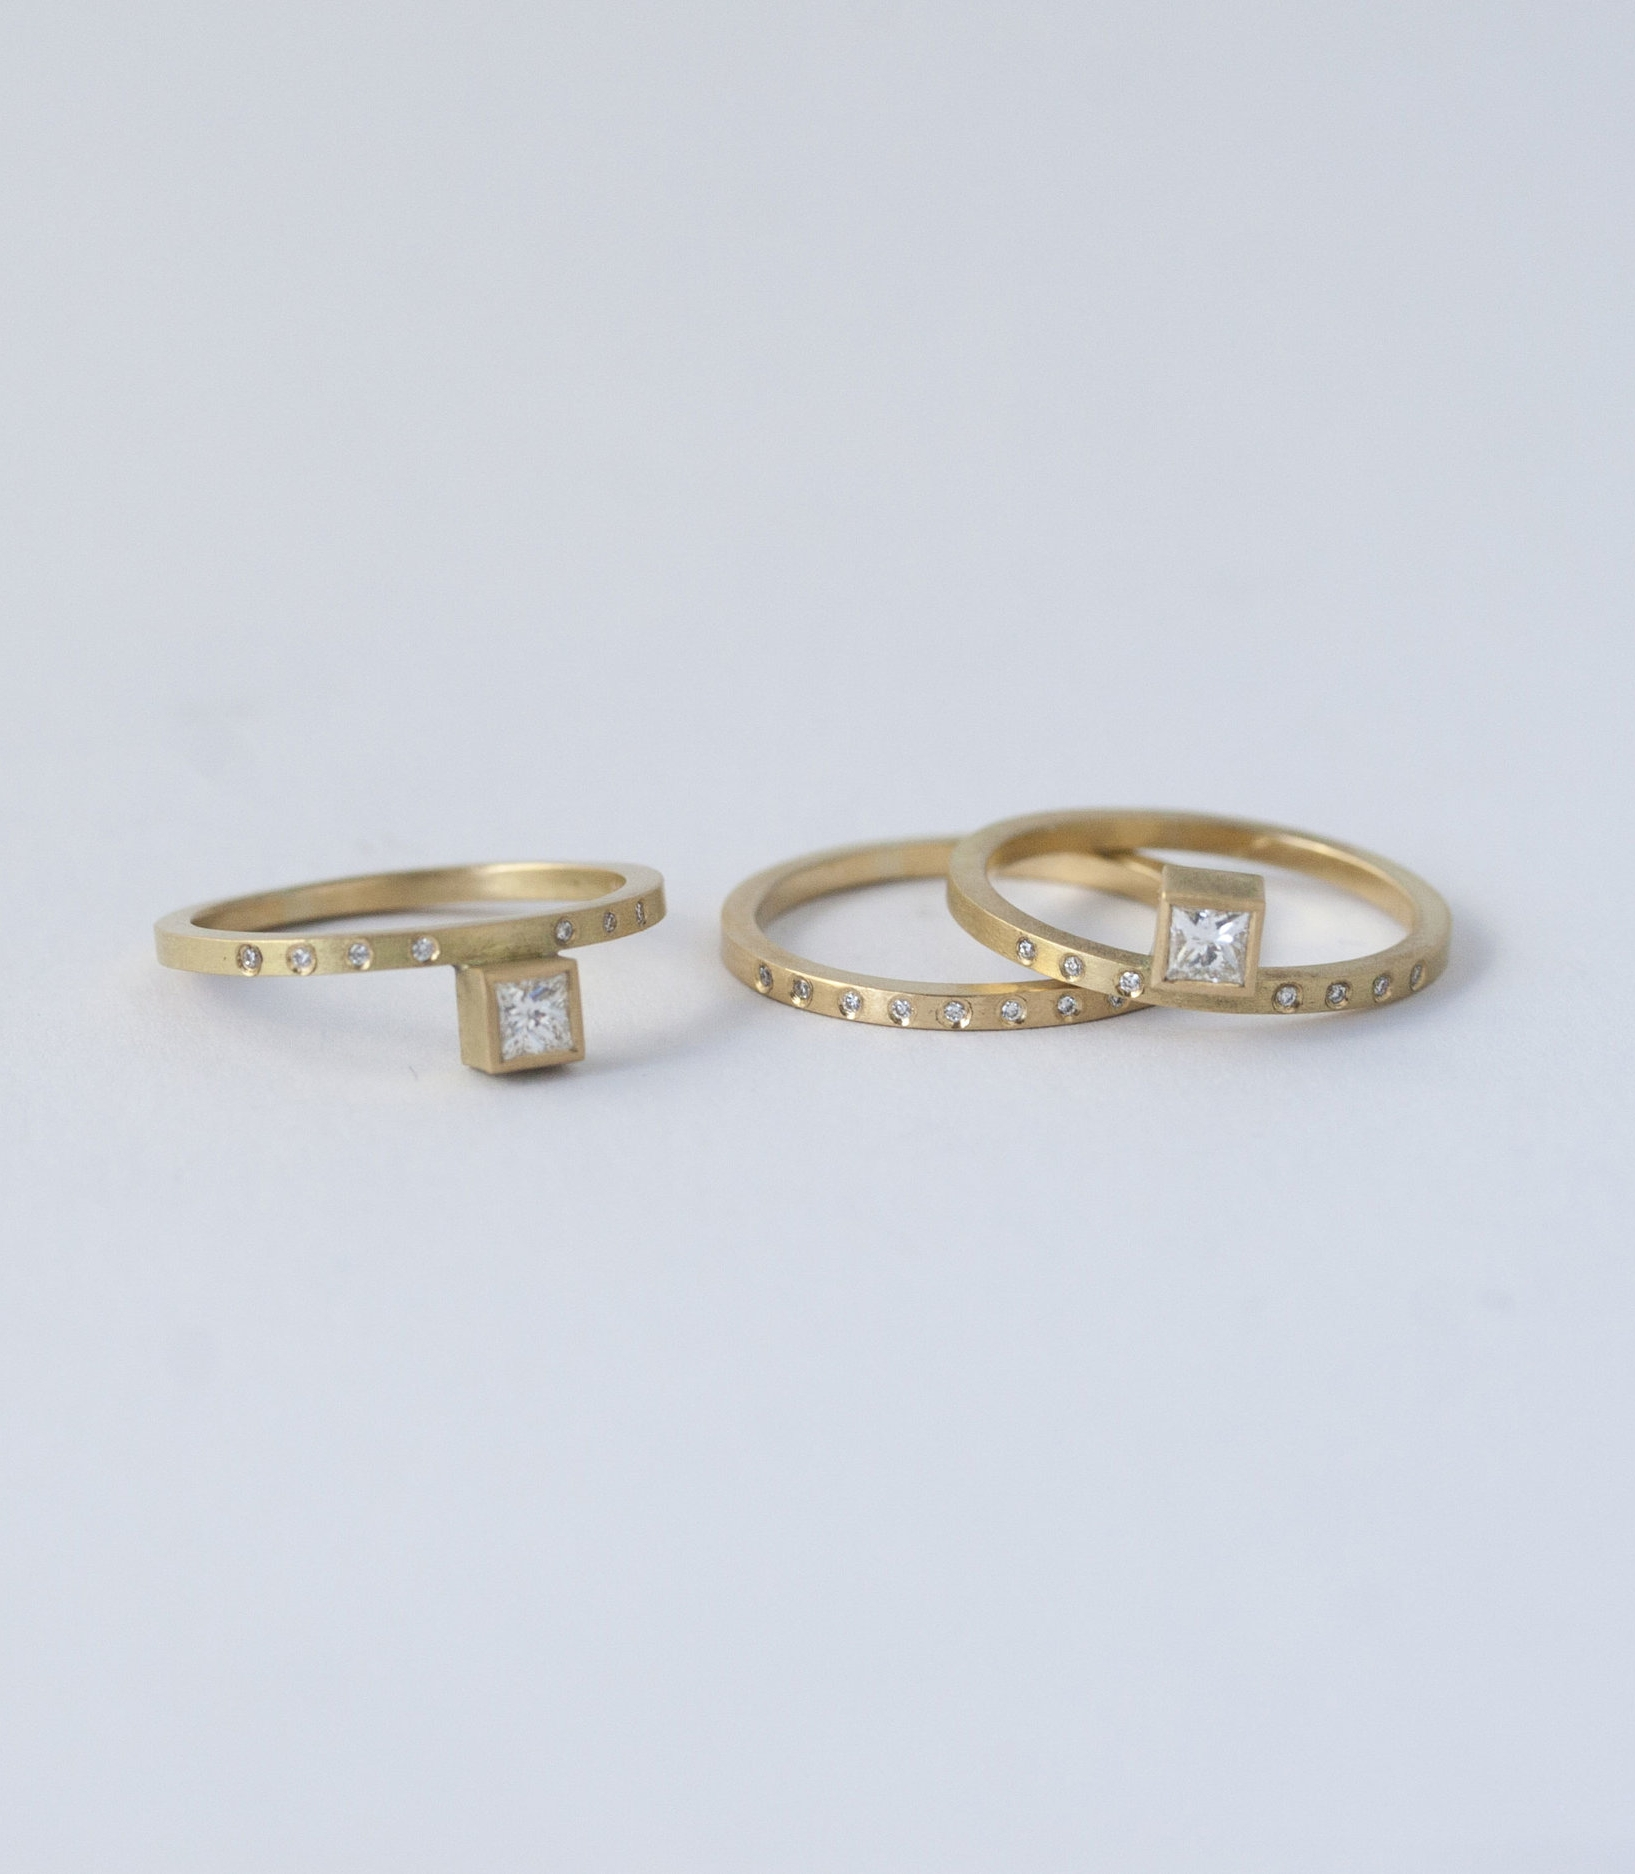 - Great as engagement and wedding rings for someone wanting something a bit different.